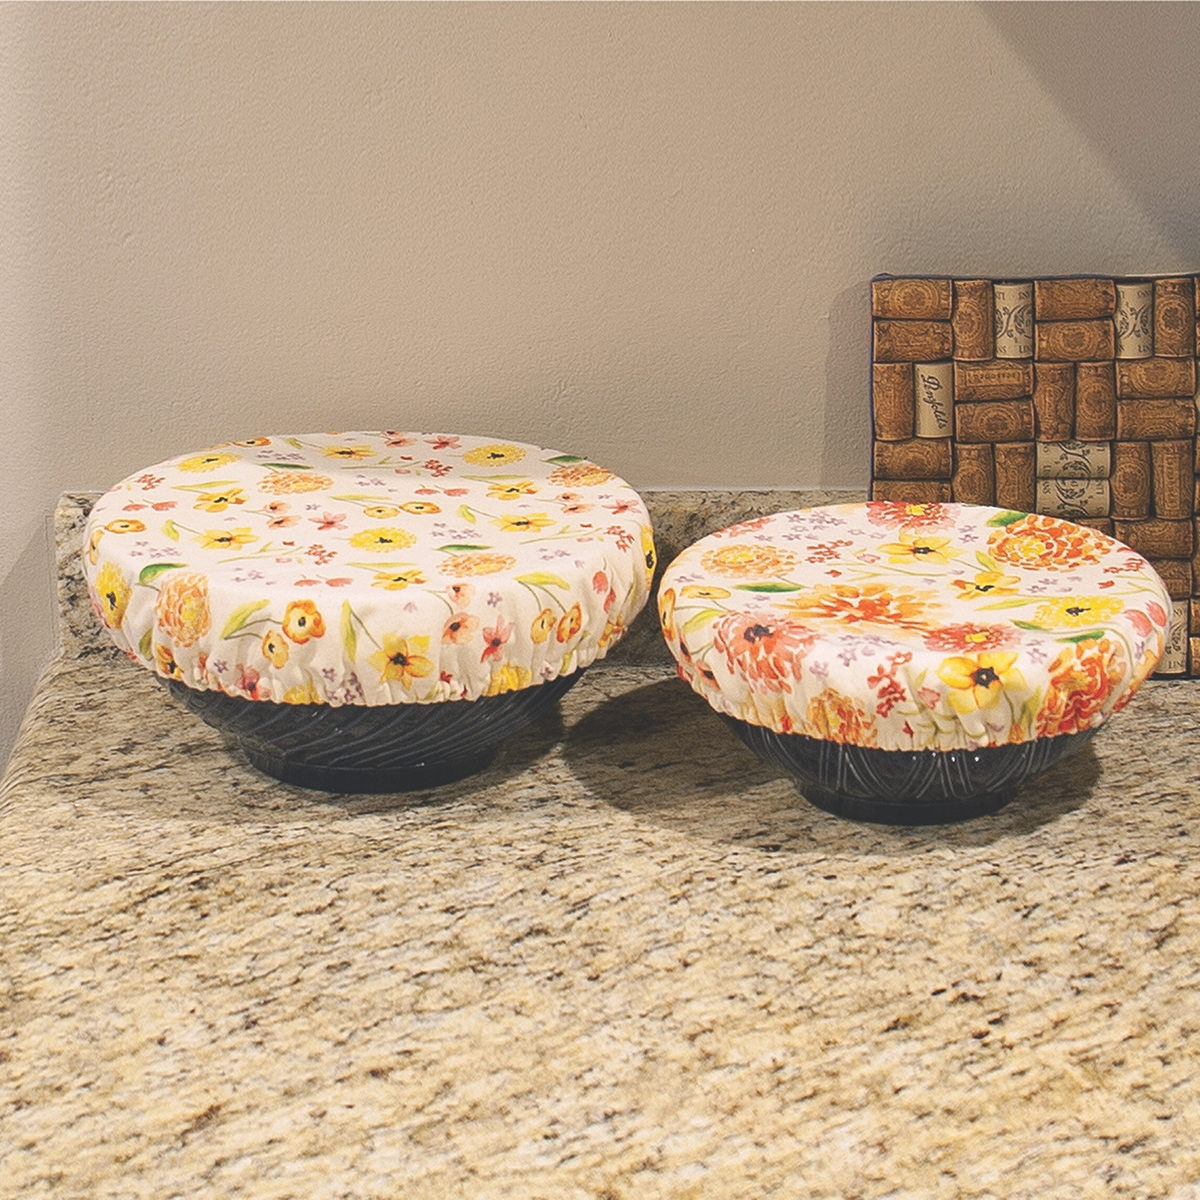 Cottage Floral Bowl Covers